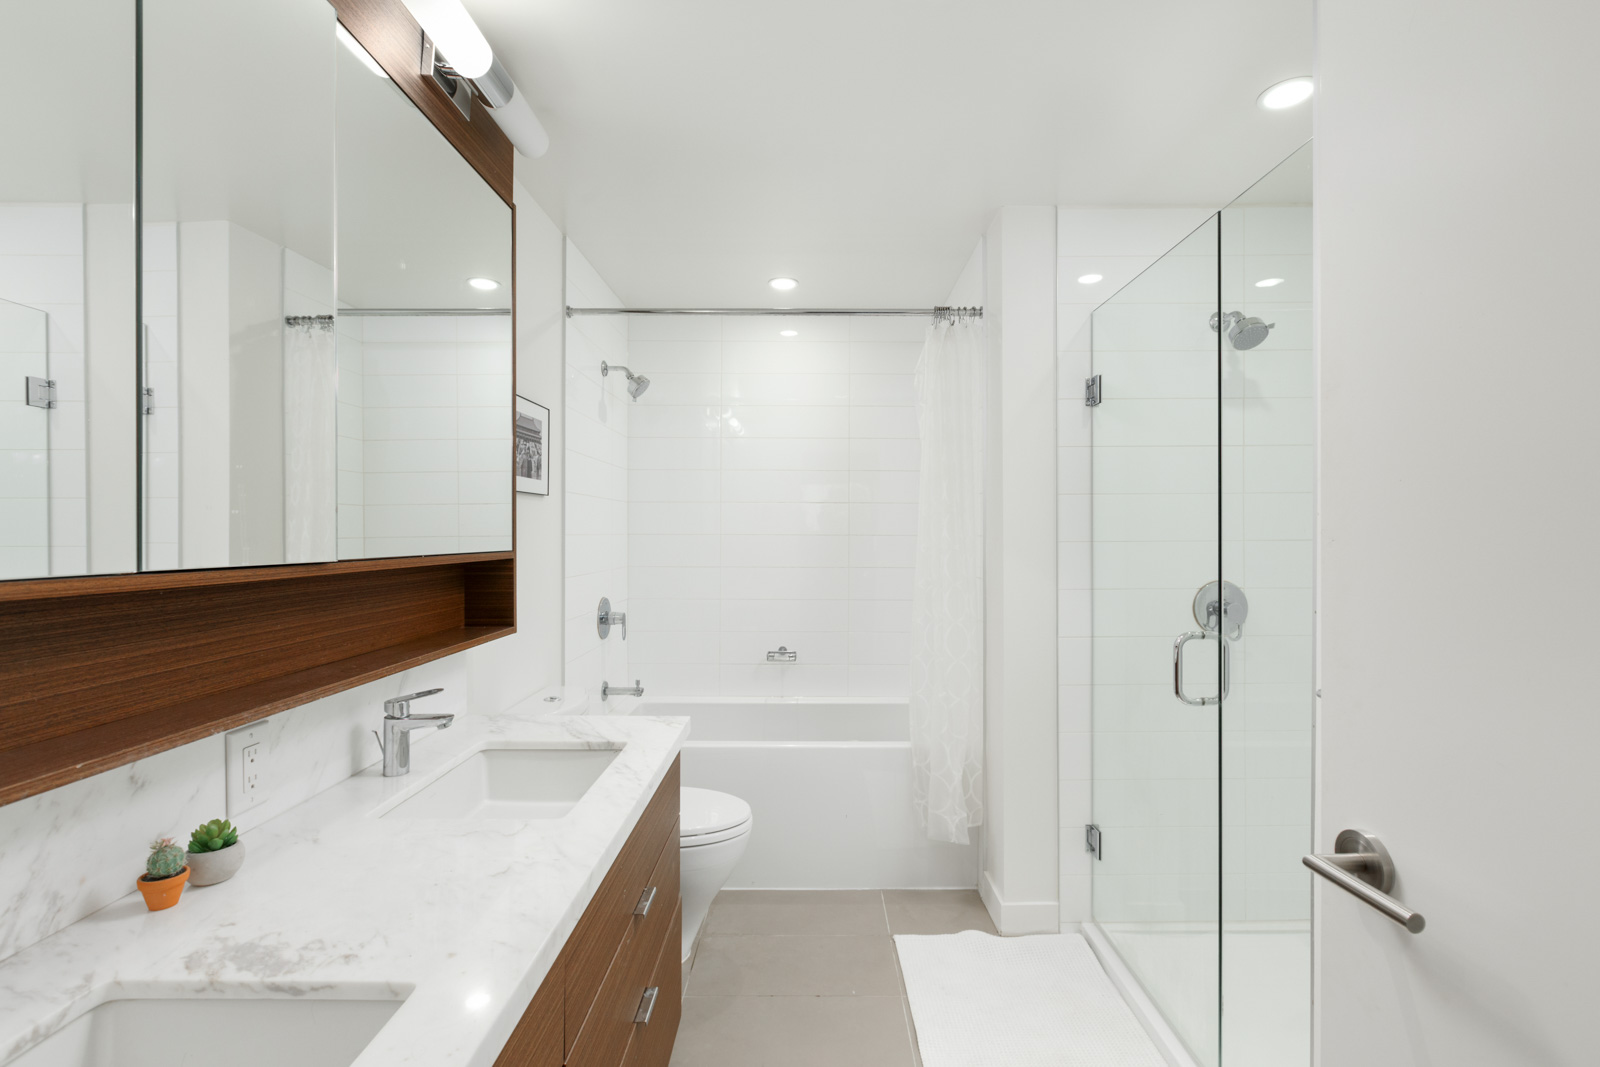 white bathroom with countertops, mirror, glass enclosed shower